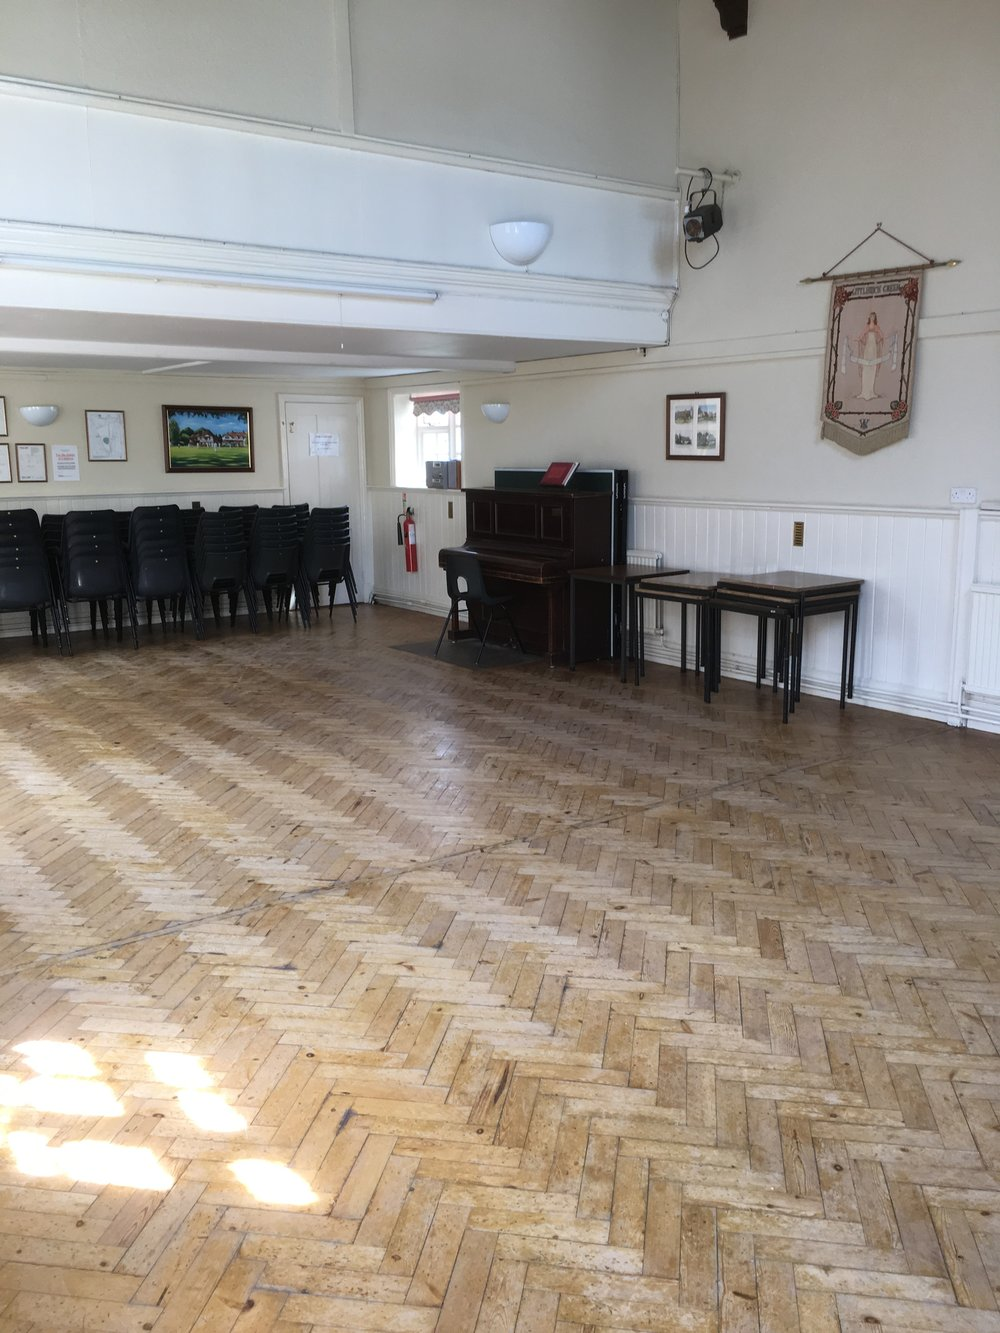 Inside hall looking at piano.JPG